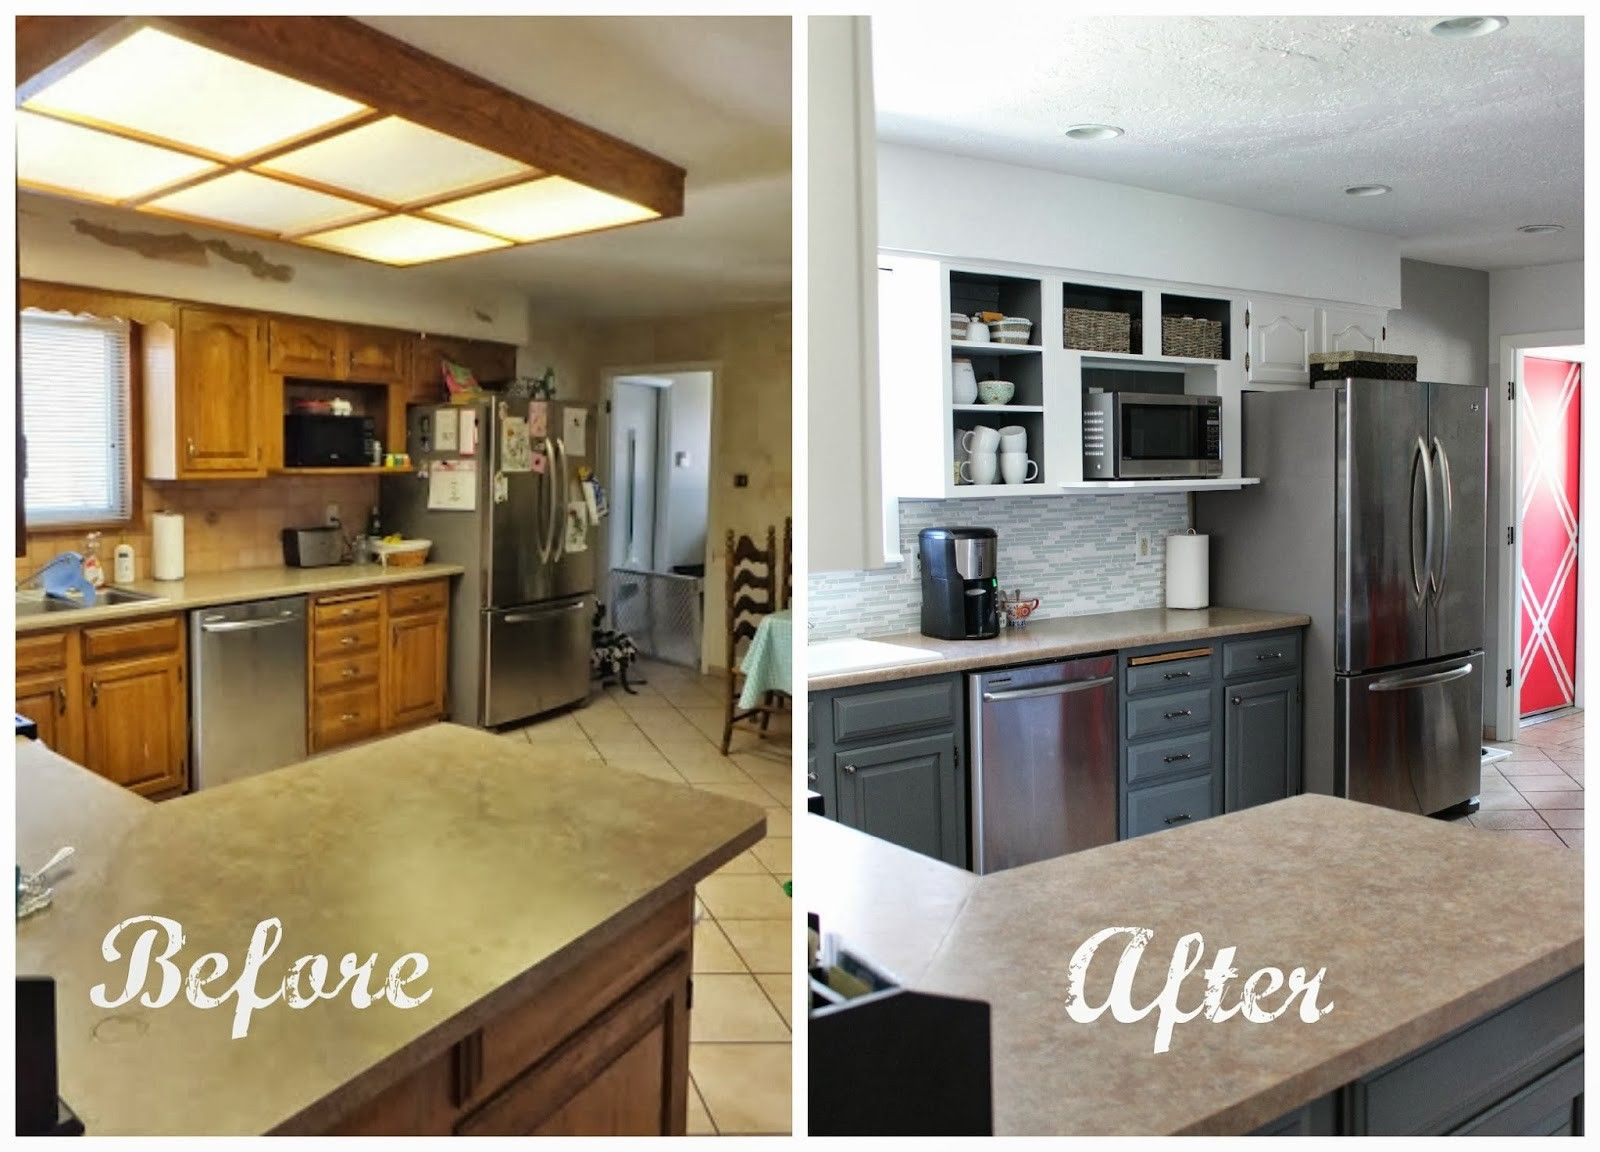 cost of kitchen remodel kitchen remodel cost kitchen ...